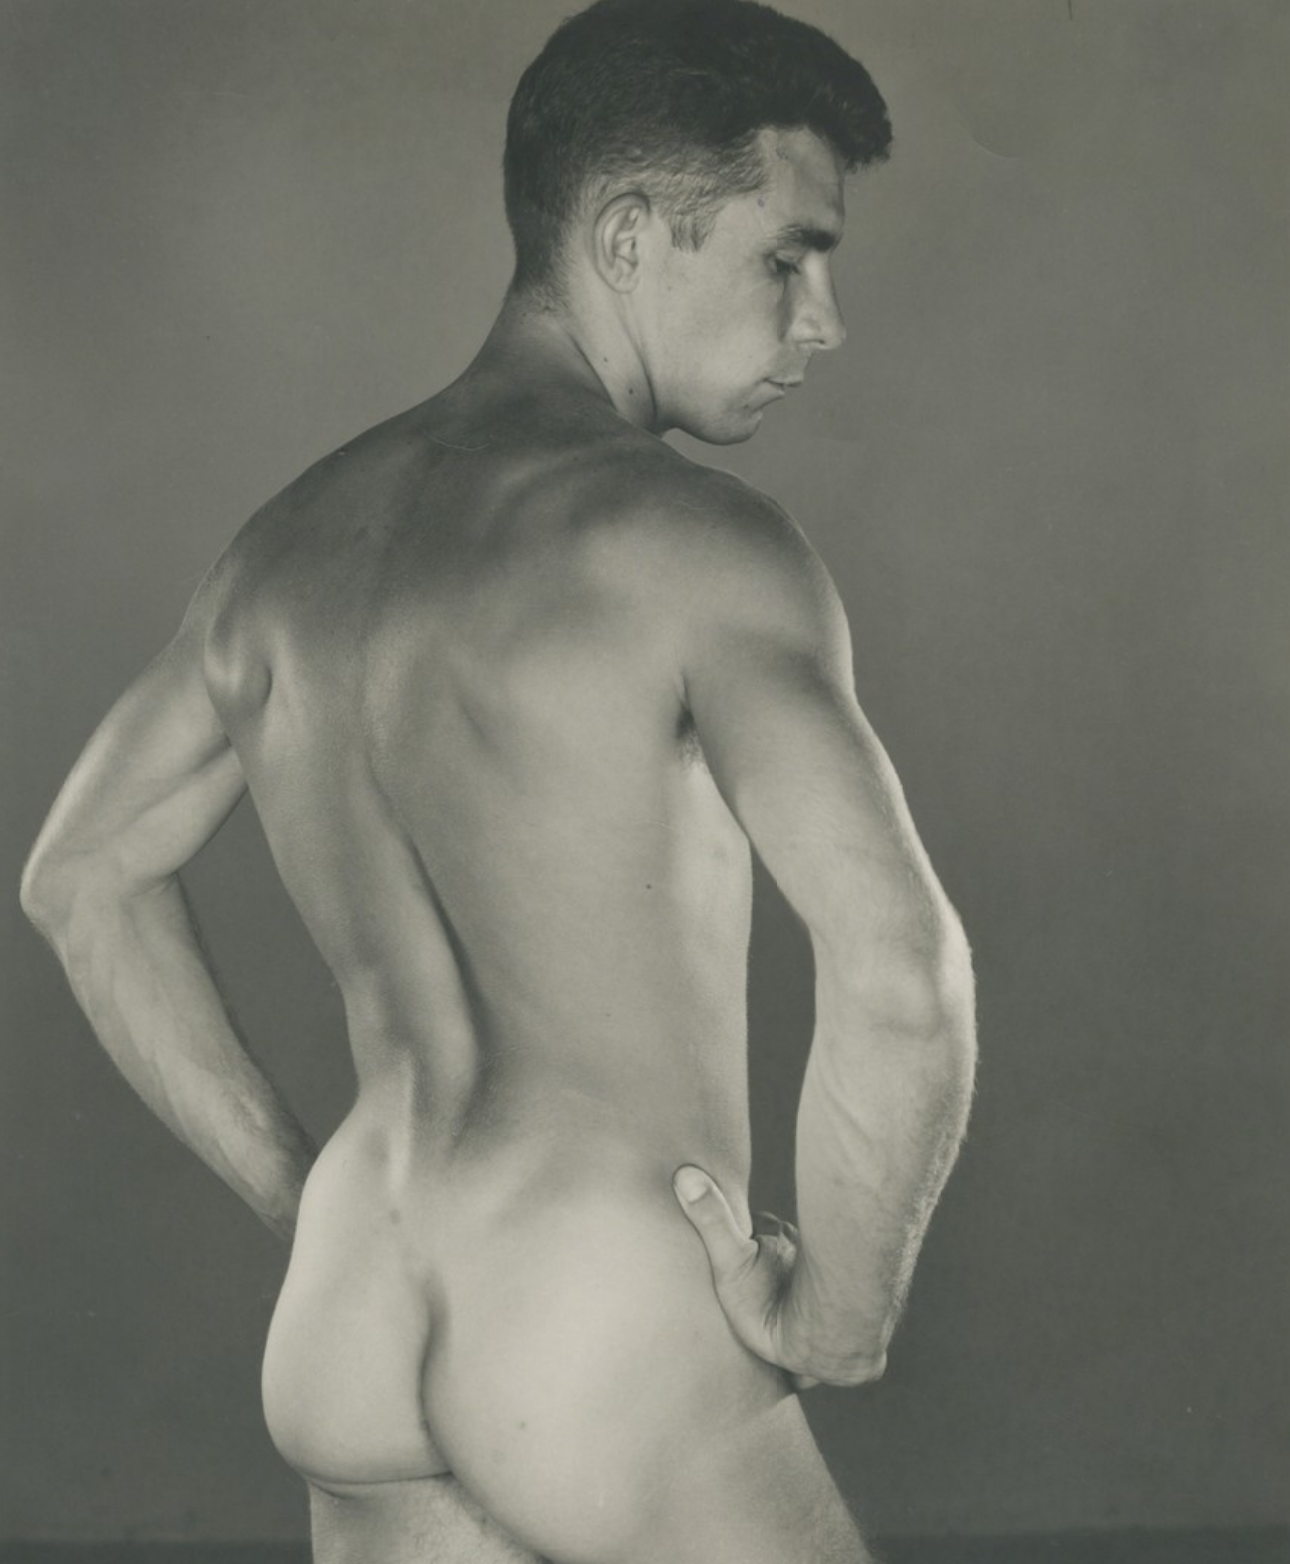 George Platt Lynes - I used several of his prints as references for my first nude shoot without having any idea who he was. Still can't believe that he was already producing shots like the one to the left (Charles Vincent) in 1930! There's a simplicity of design and composition but also a dramatic way of lighting that informed (and still informs) how I think about each of those things.